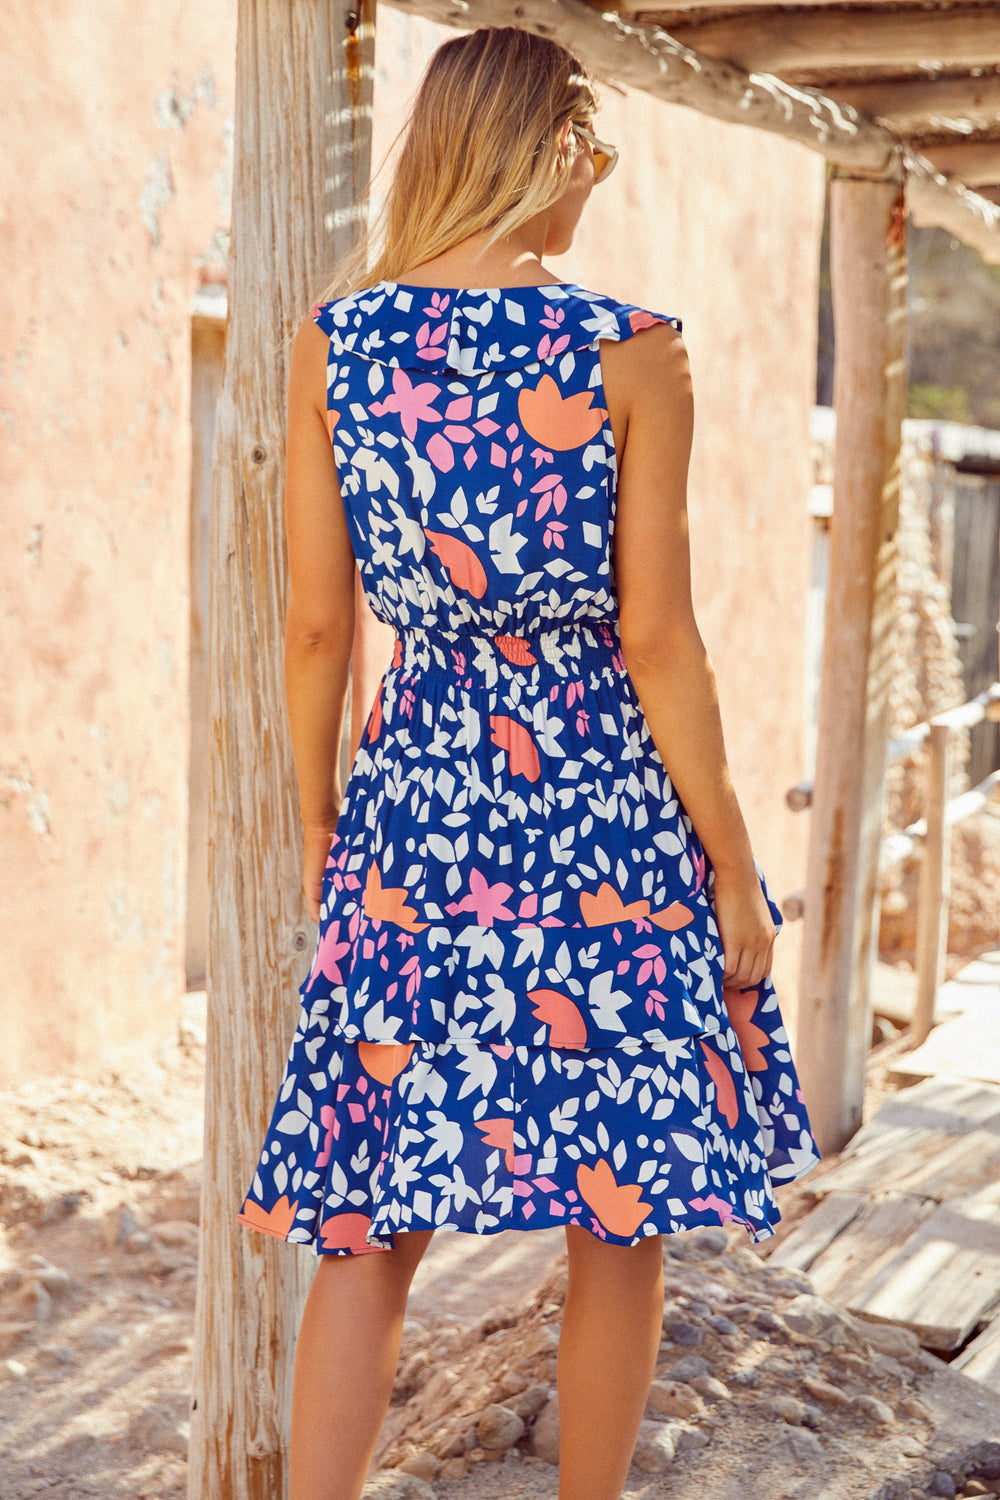 Rosa Dress In Del Mar Eco Vero